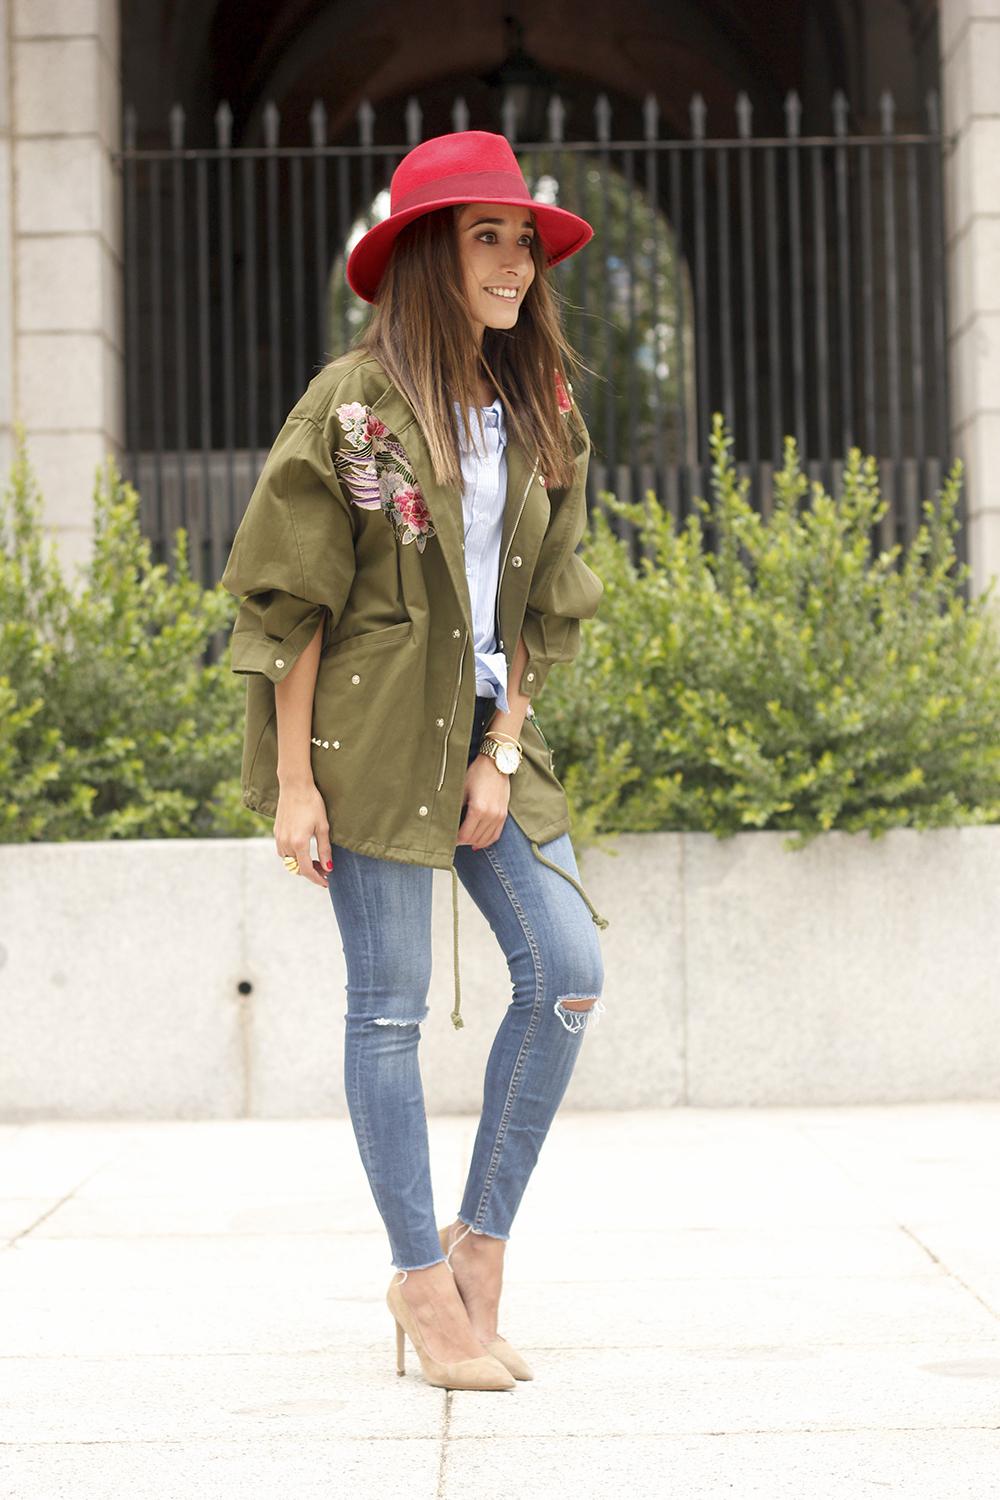 Green Parka Jeans nude heels red uterqüe hat style fashion13